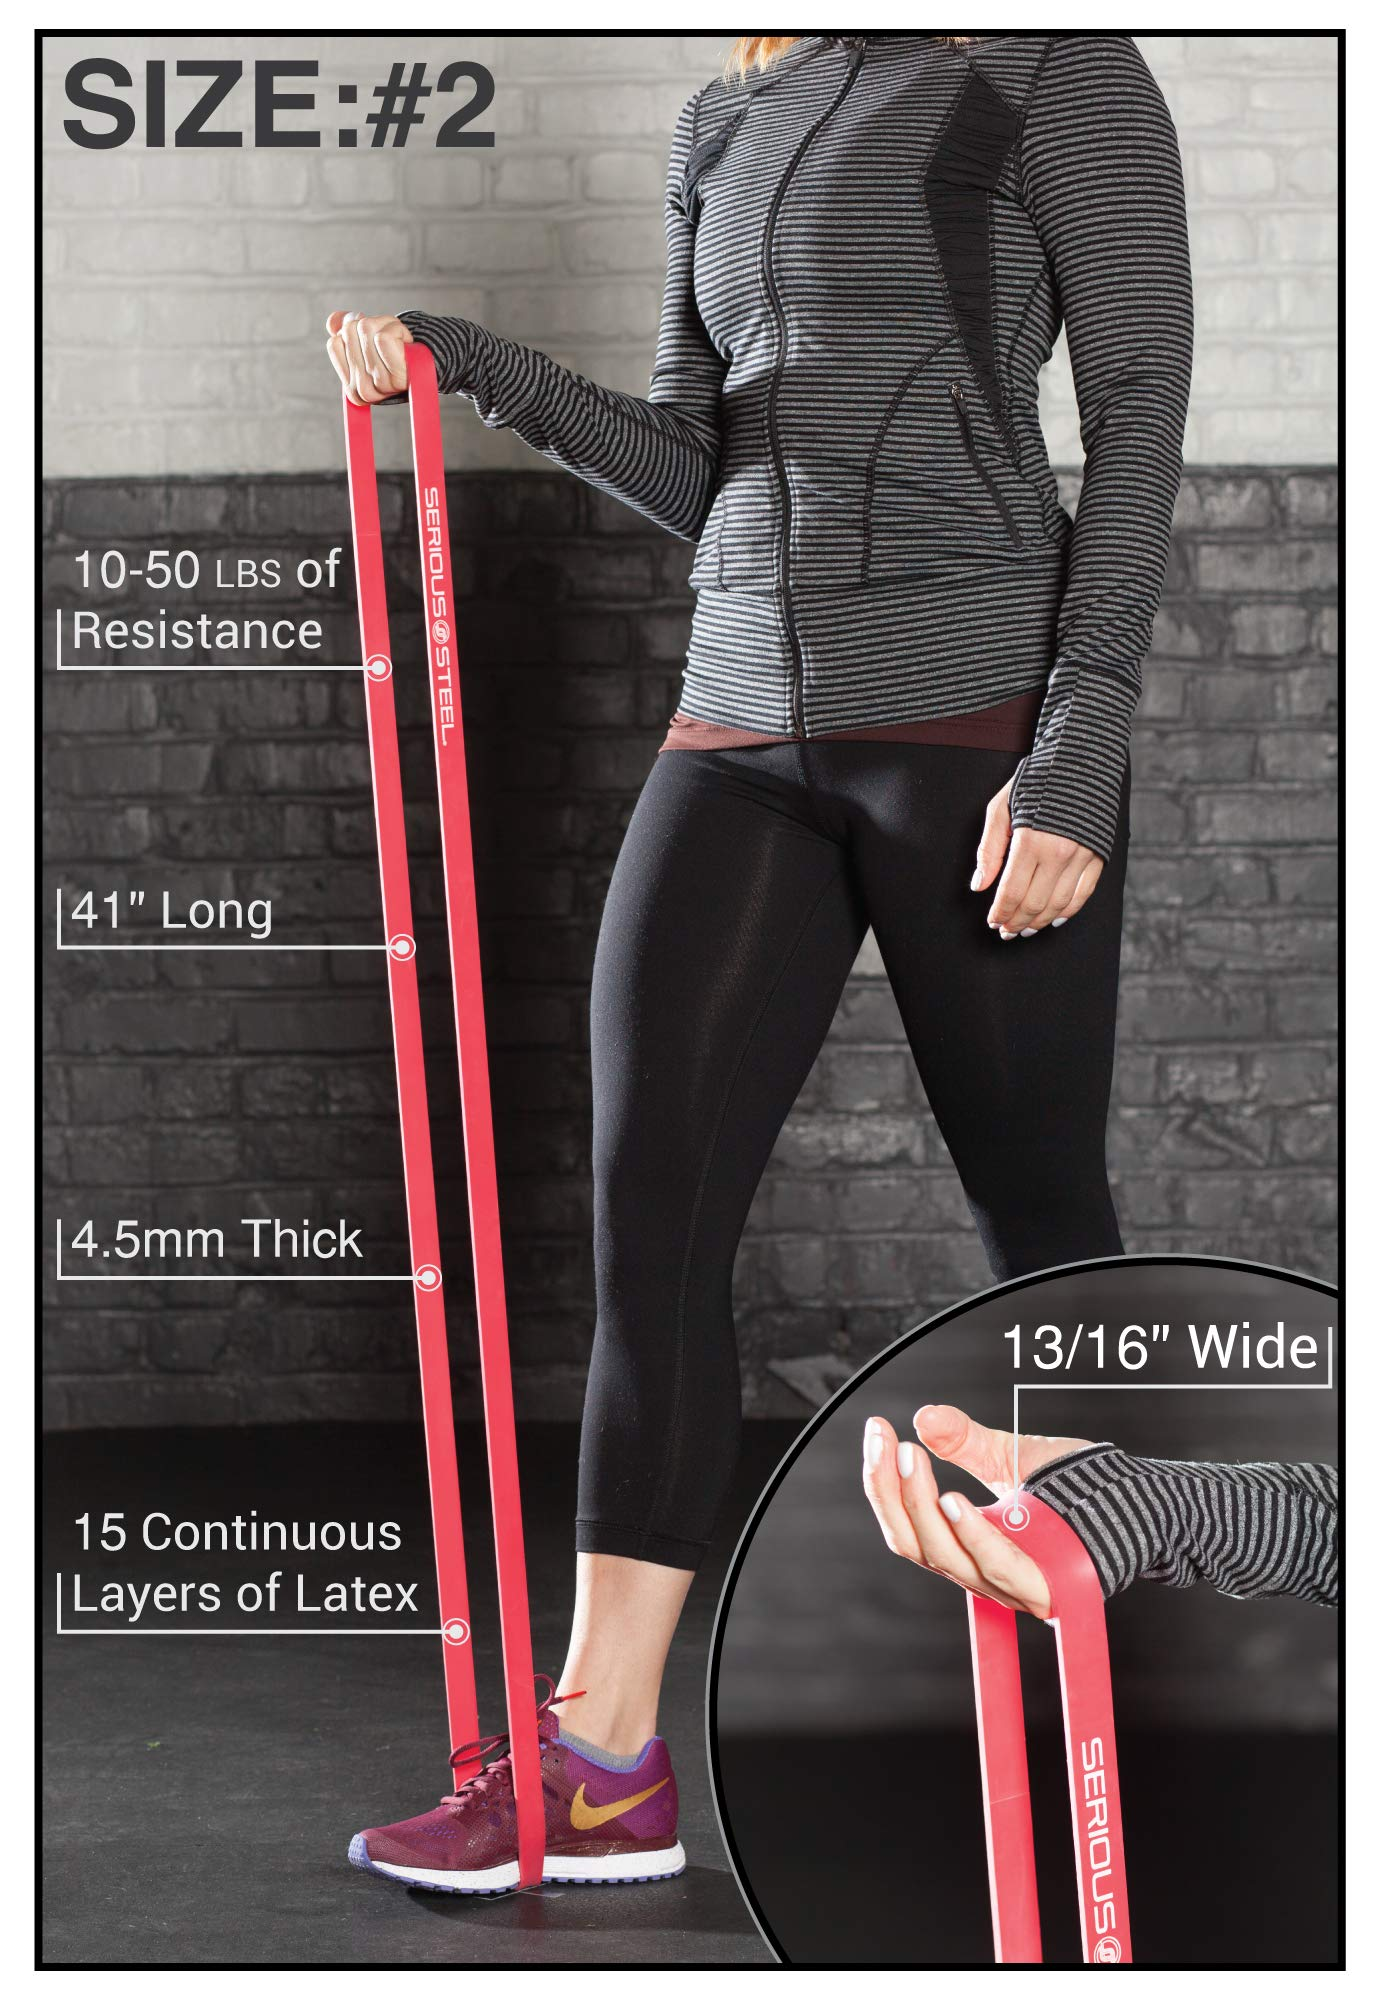 Serious Steel Fitness Red - #2 Monster Mini Pull-up Assist & Resistance Band (Size: 13/16'' x 4.5mm Resistance: 10-50lbs) by Serious Steel Fitness (Image #3)